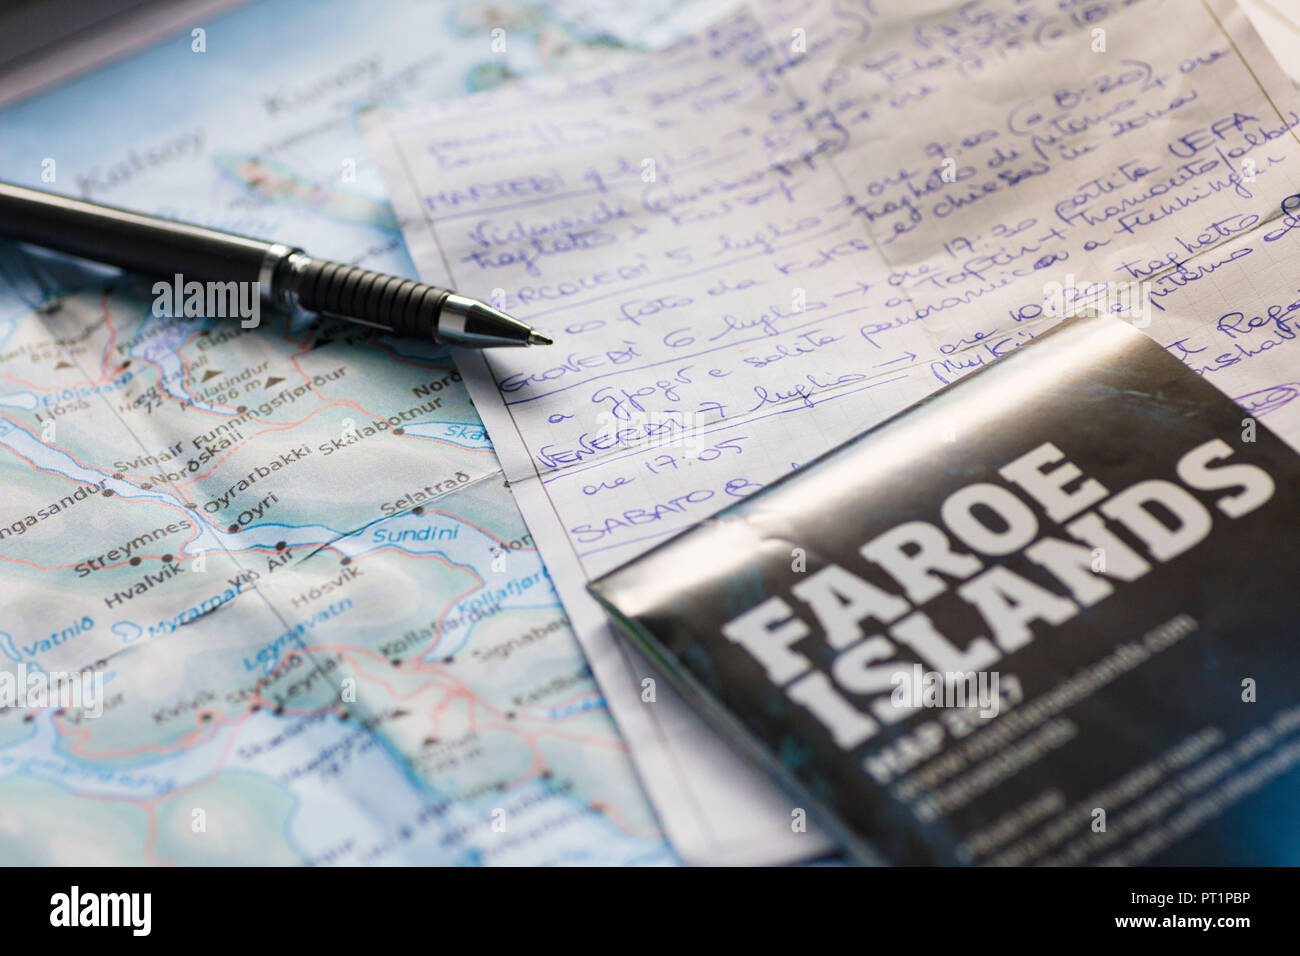 Notes and map of Faroe Islands on table for scheduling the trip - Stock Image